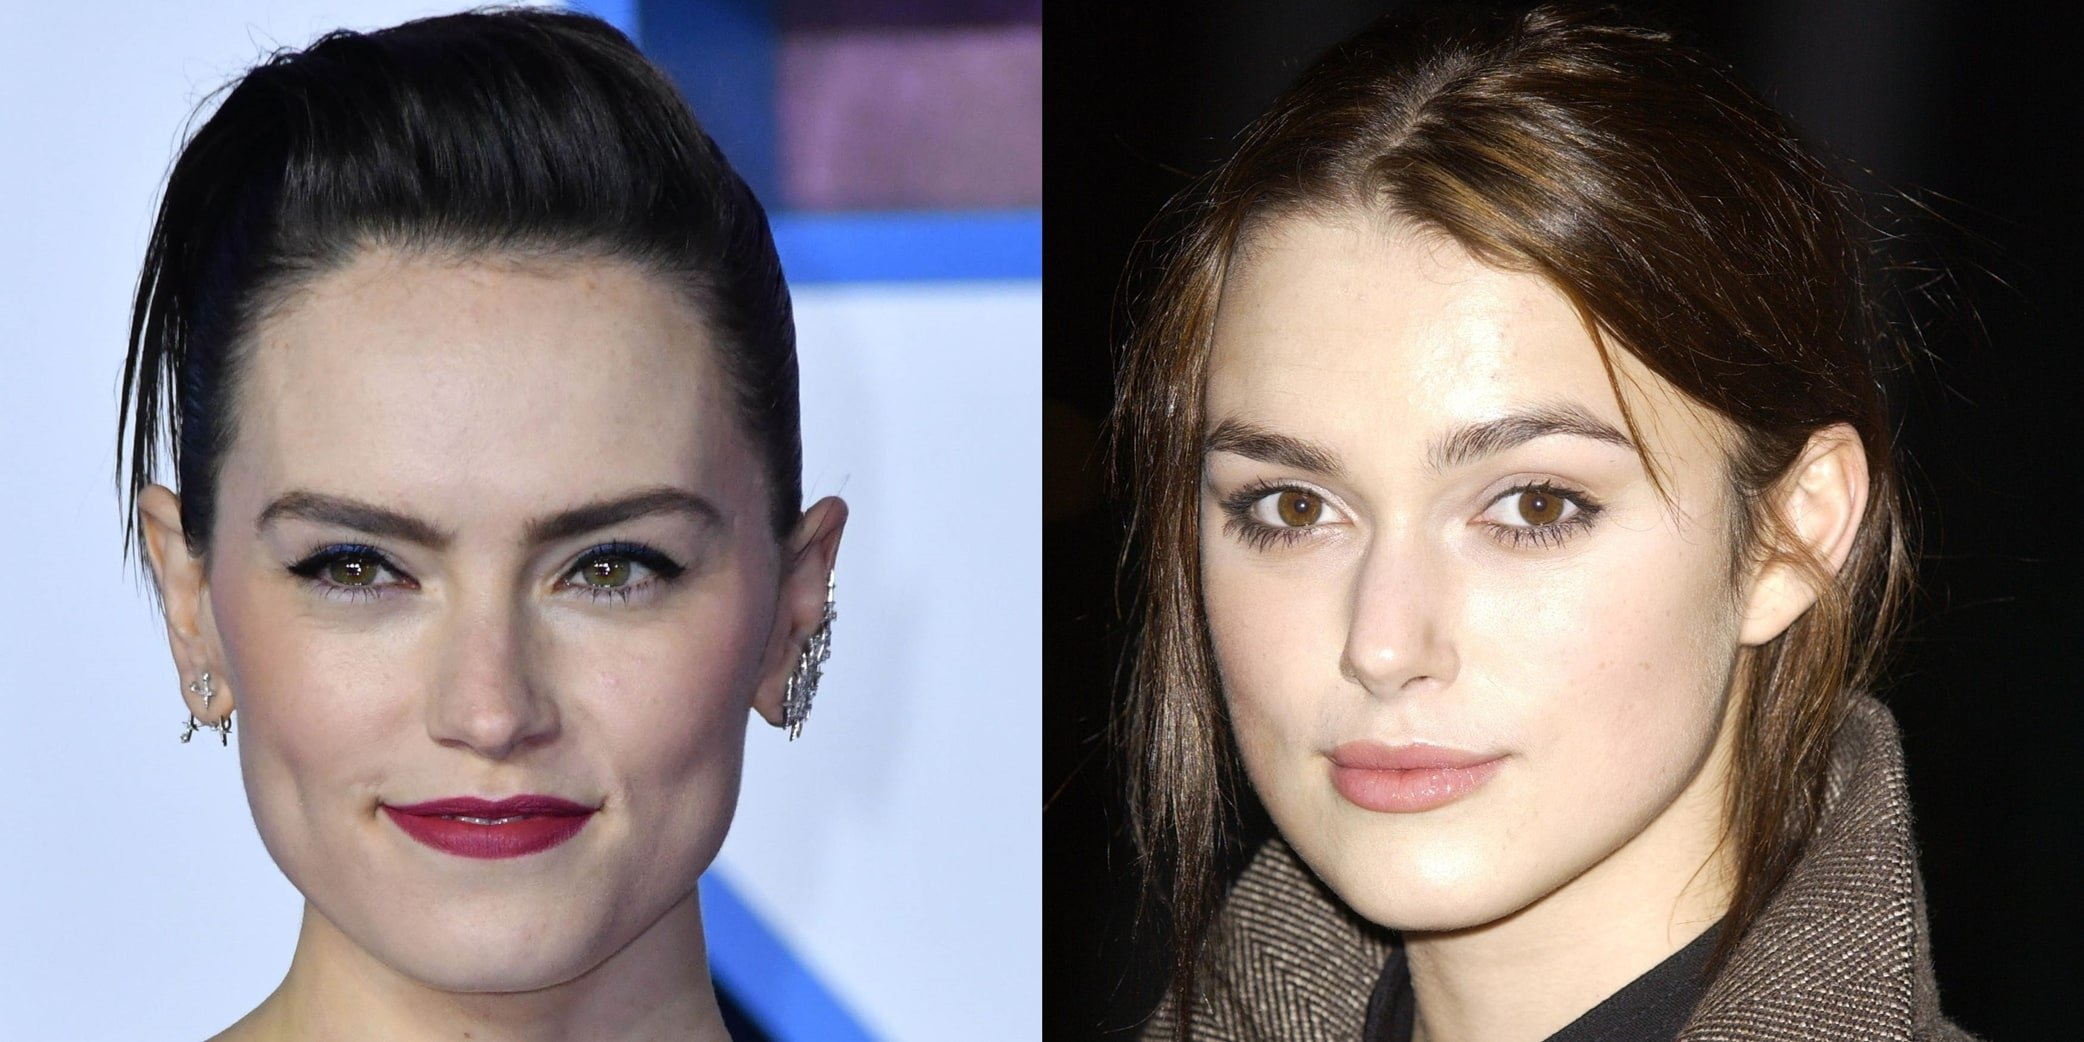 Daisy Ridley (L) and Keira Knightley (R) are not related